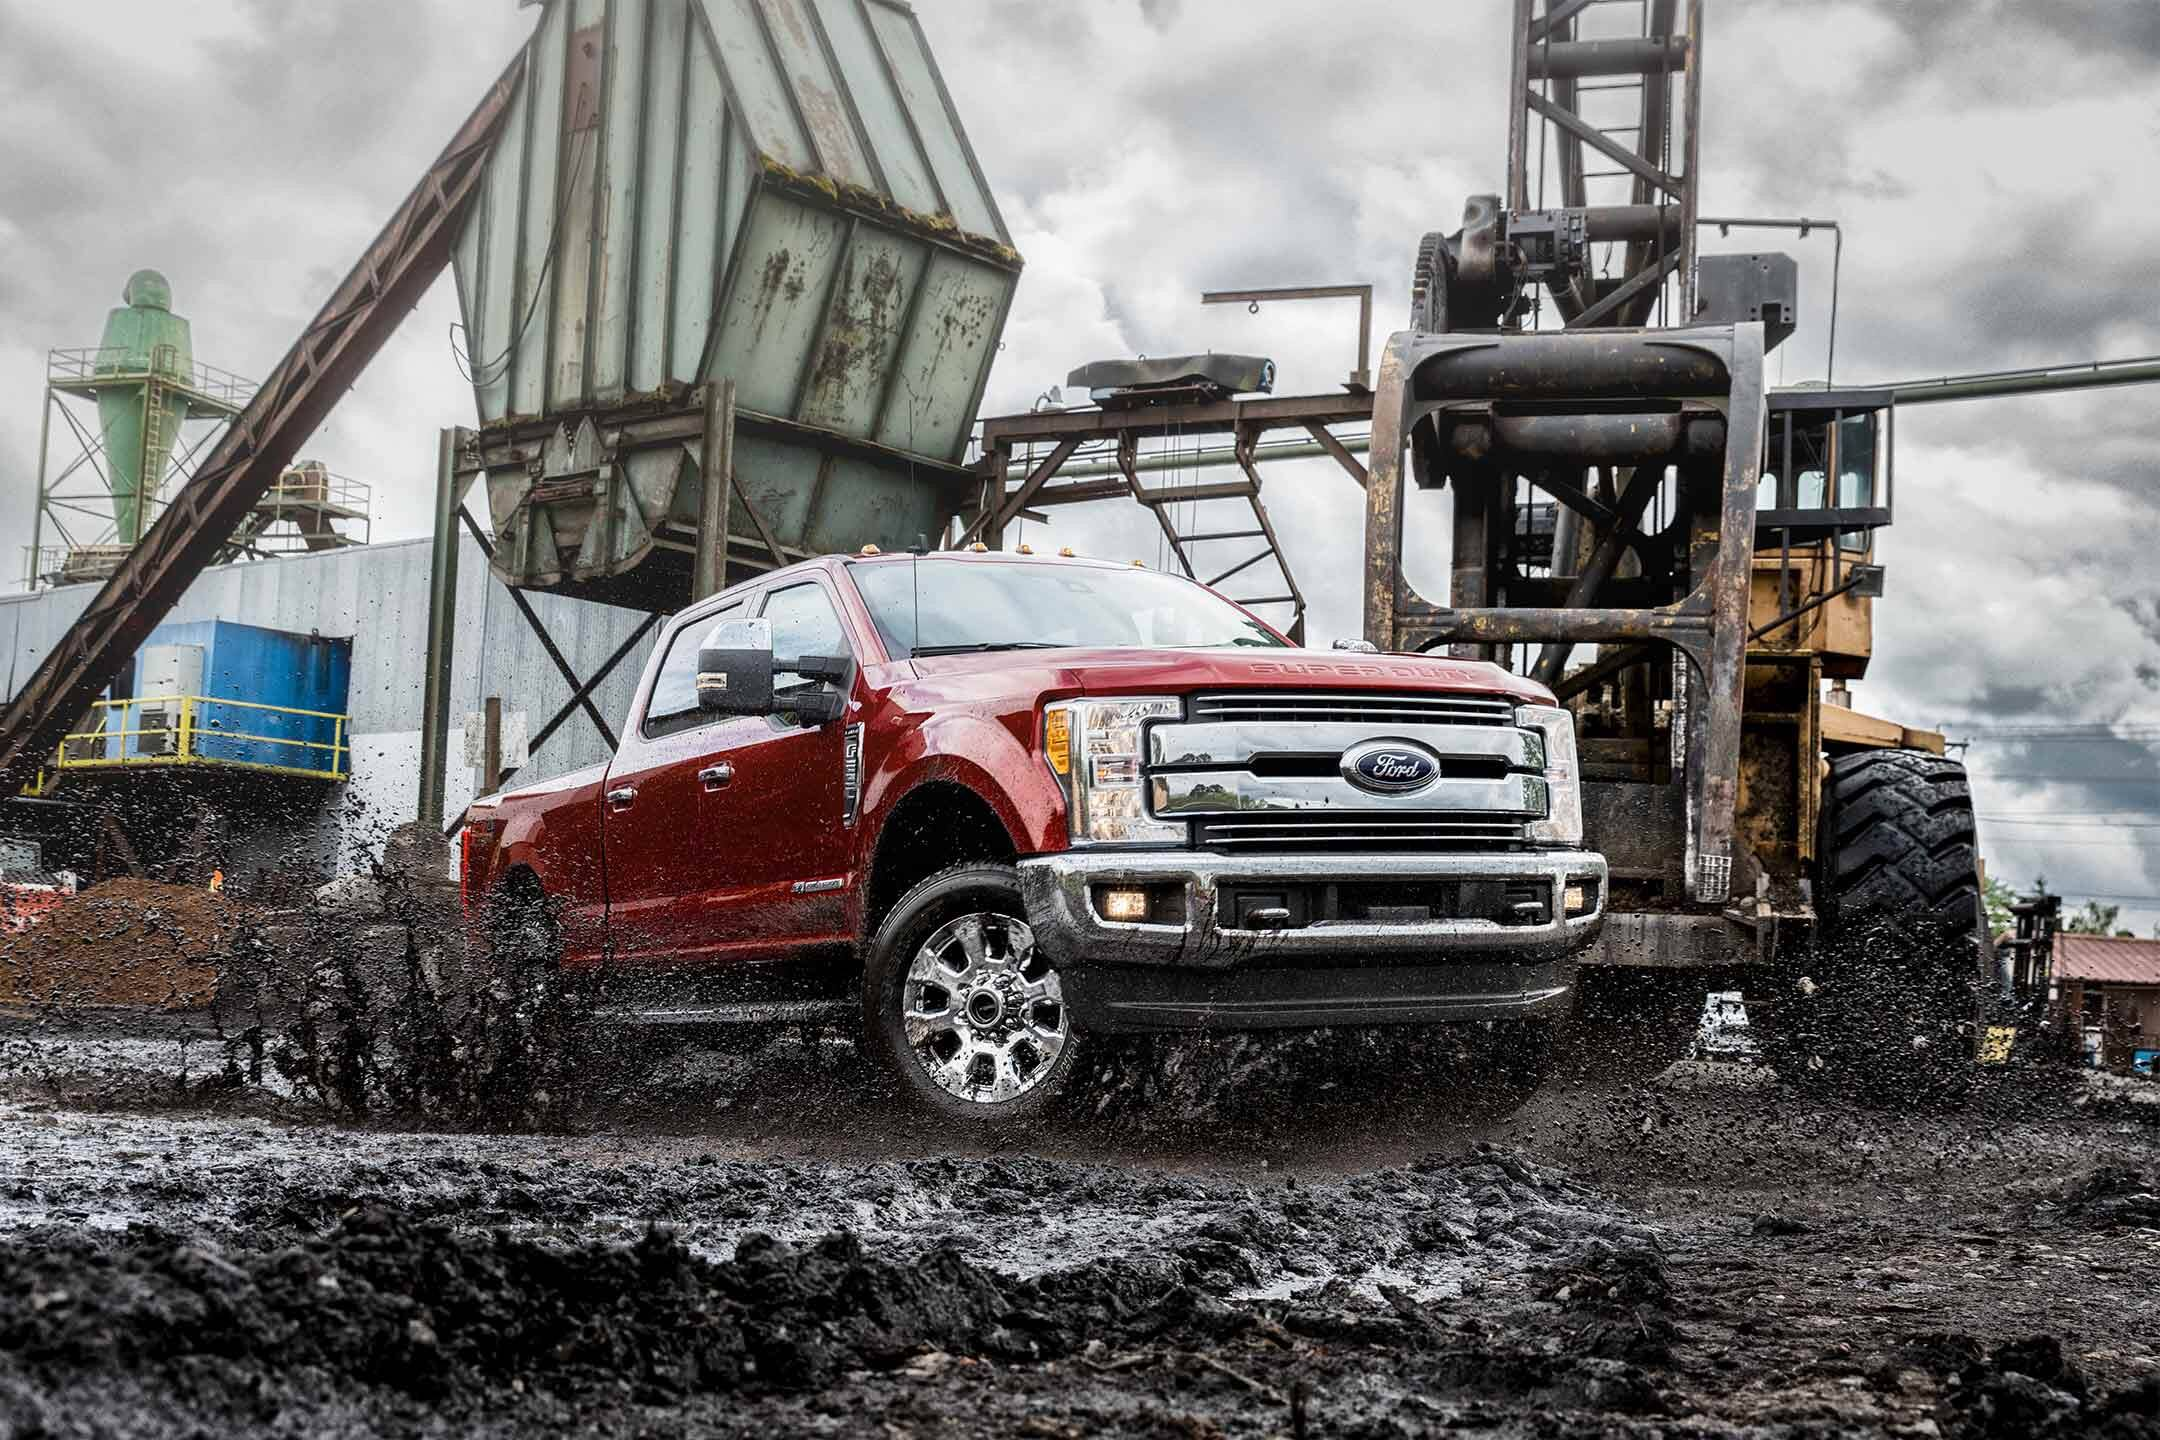 red 2019 ford f-250 super duty driving through mud in a construction site